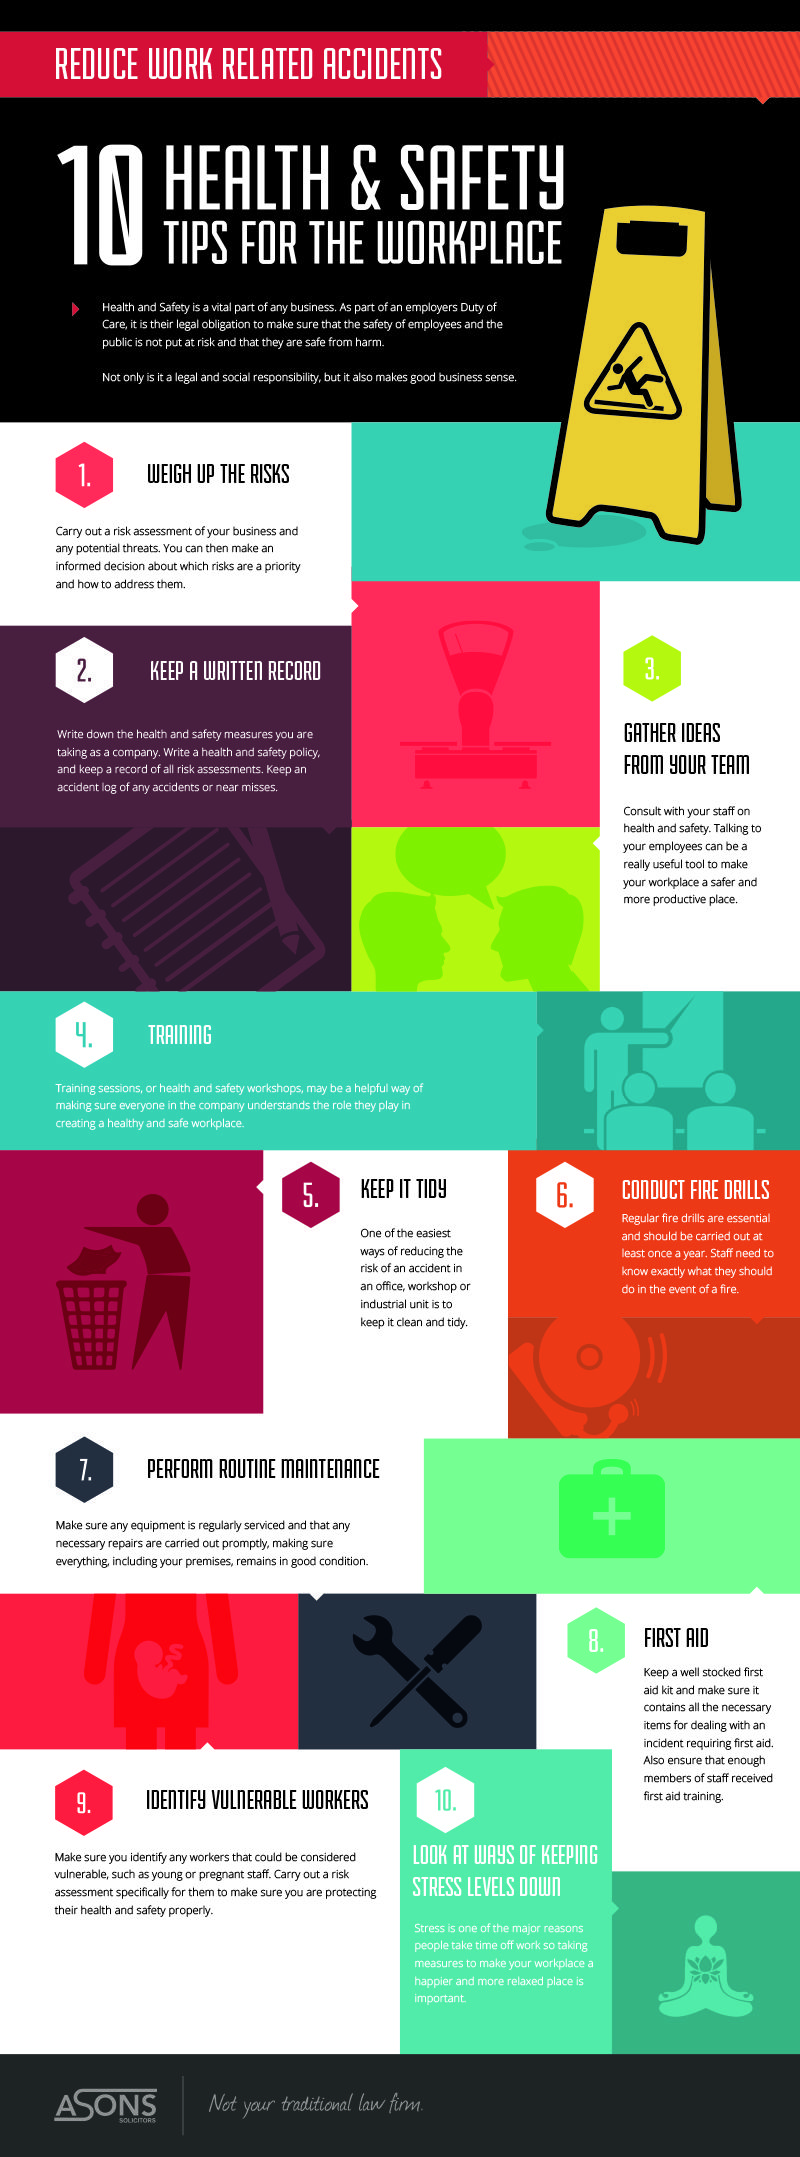 workplace safety infographic Safety infographic, Health